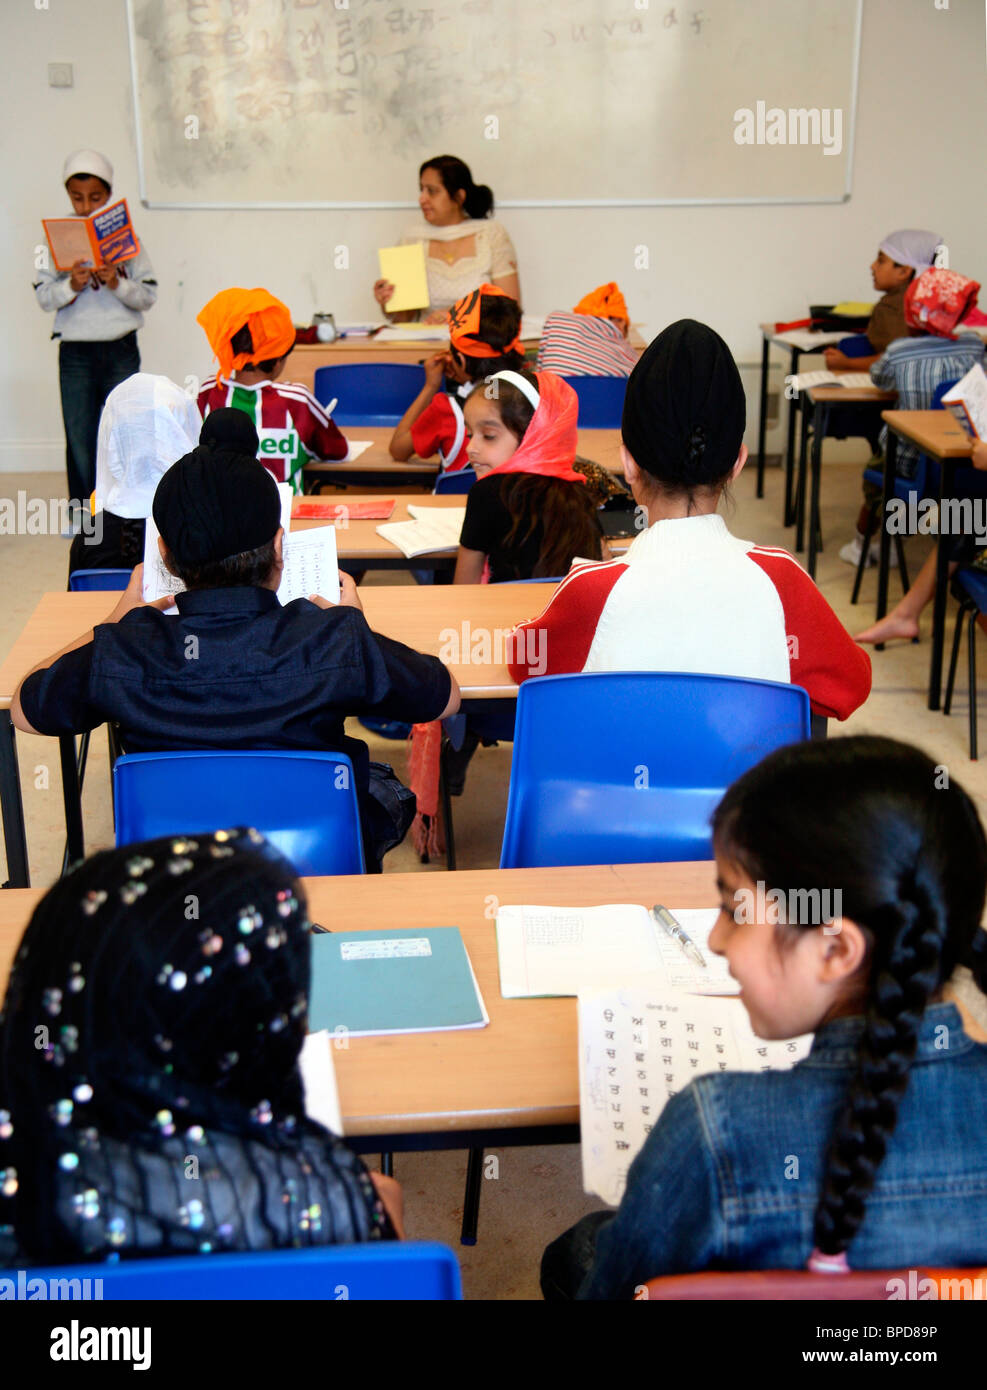 Punjabi lesson for Sikh children in a classroom of the gurdwara - Stock Image